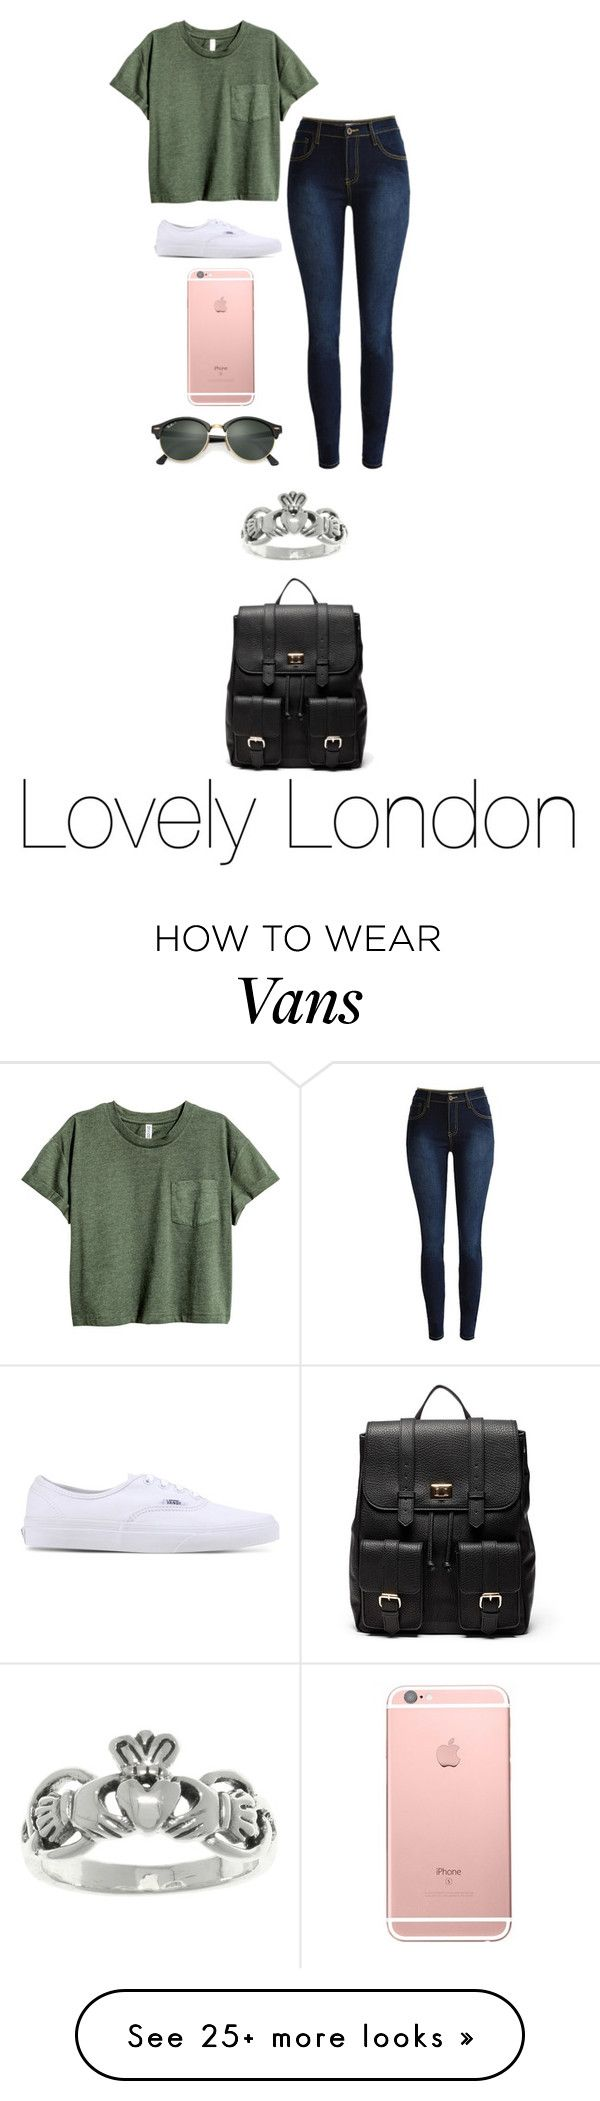 """Lovely London"" by tiffanylechner on Polyvore featuring Vans, Ray-Ban, Carolina Glamour Collection and Sole Society"